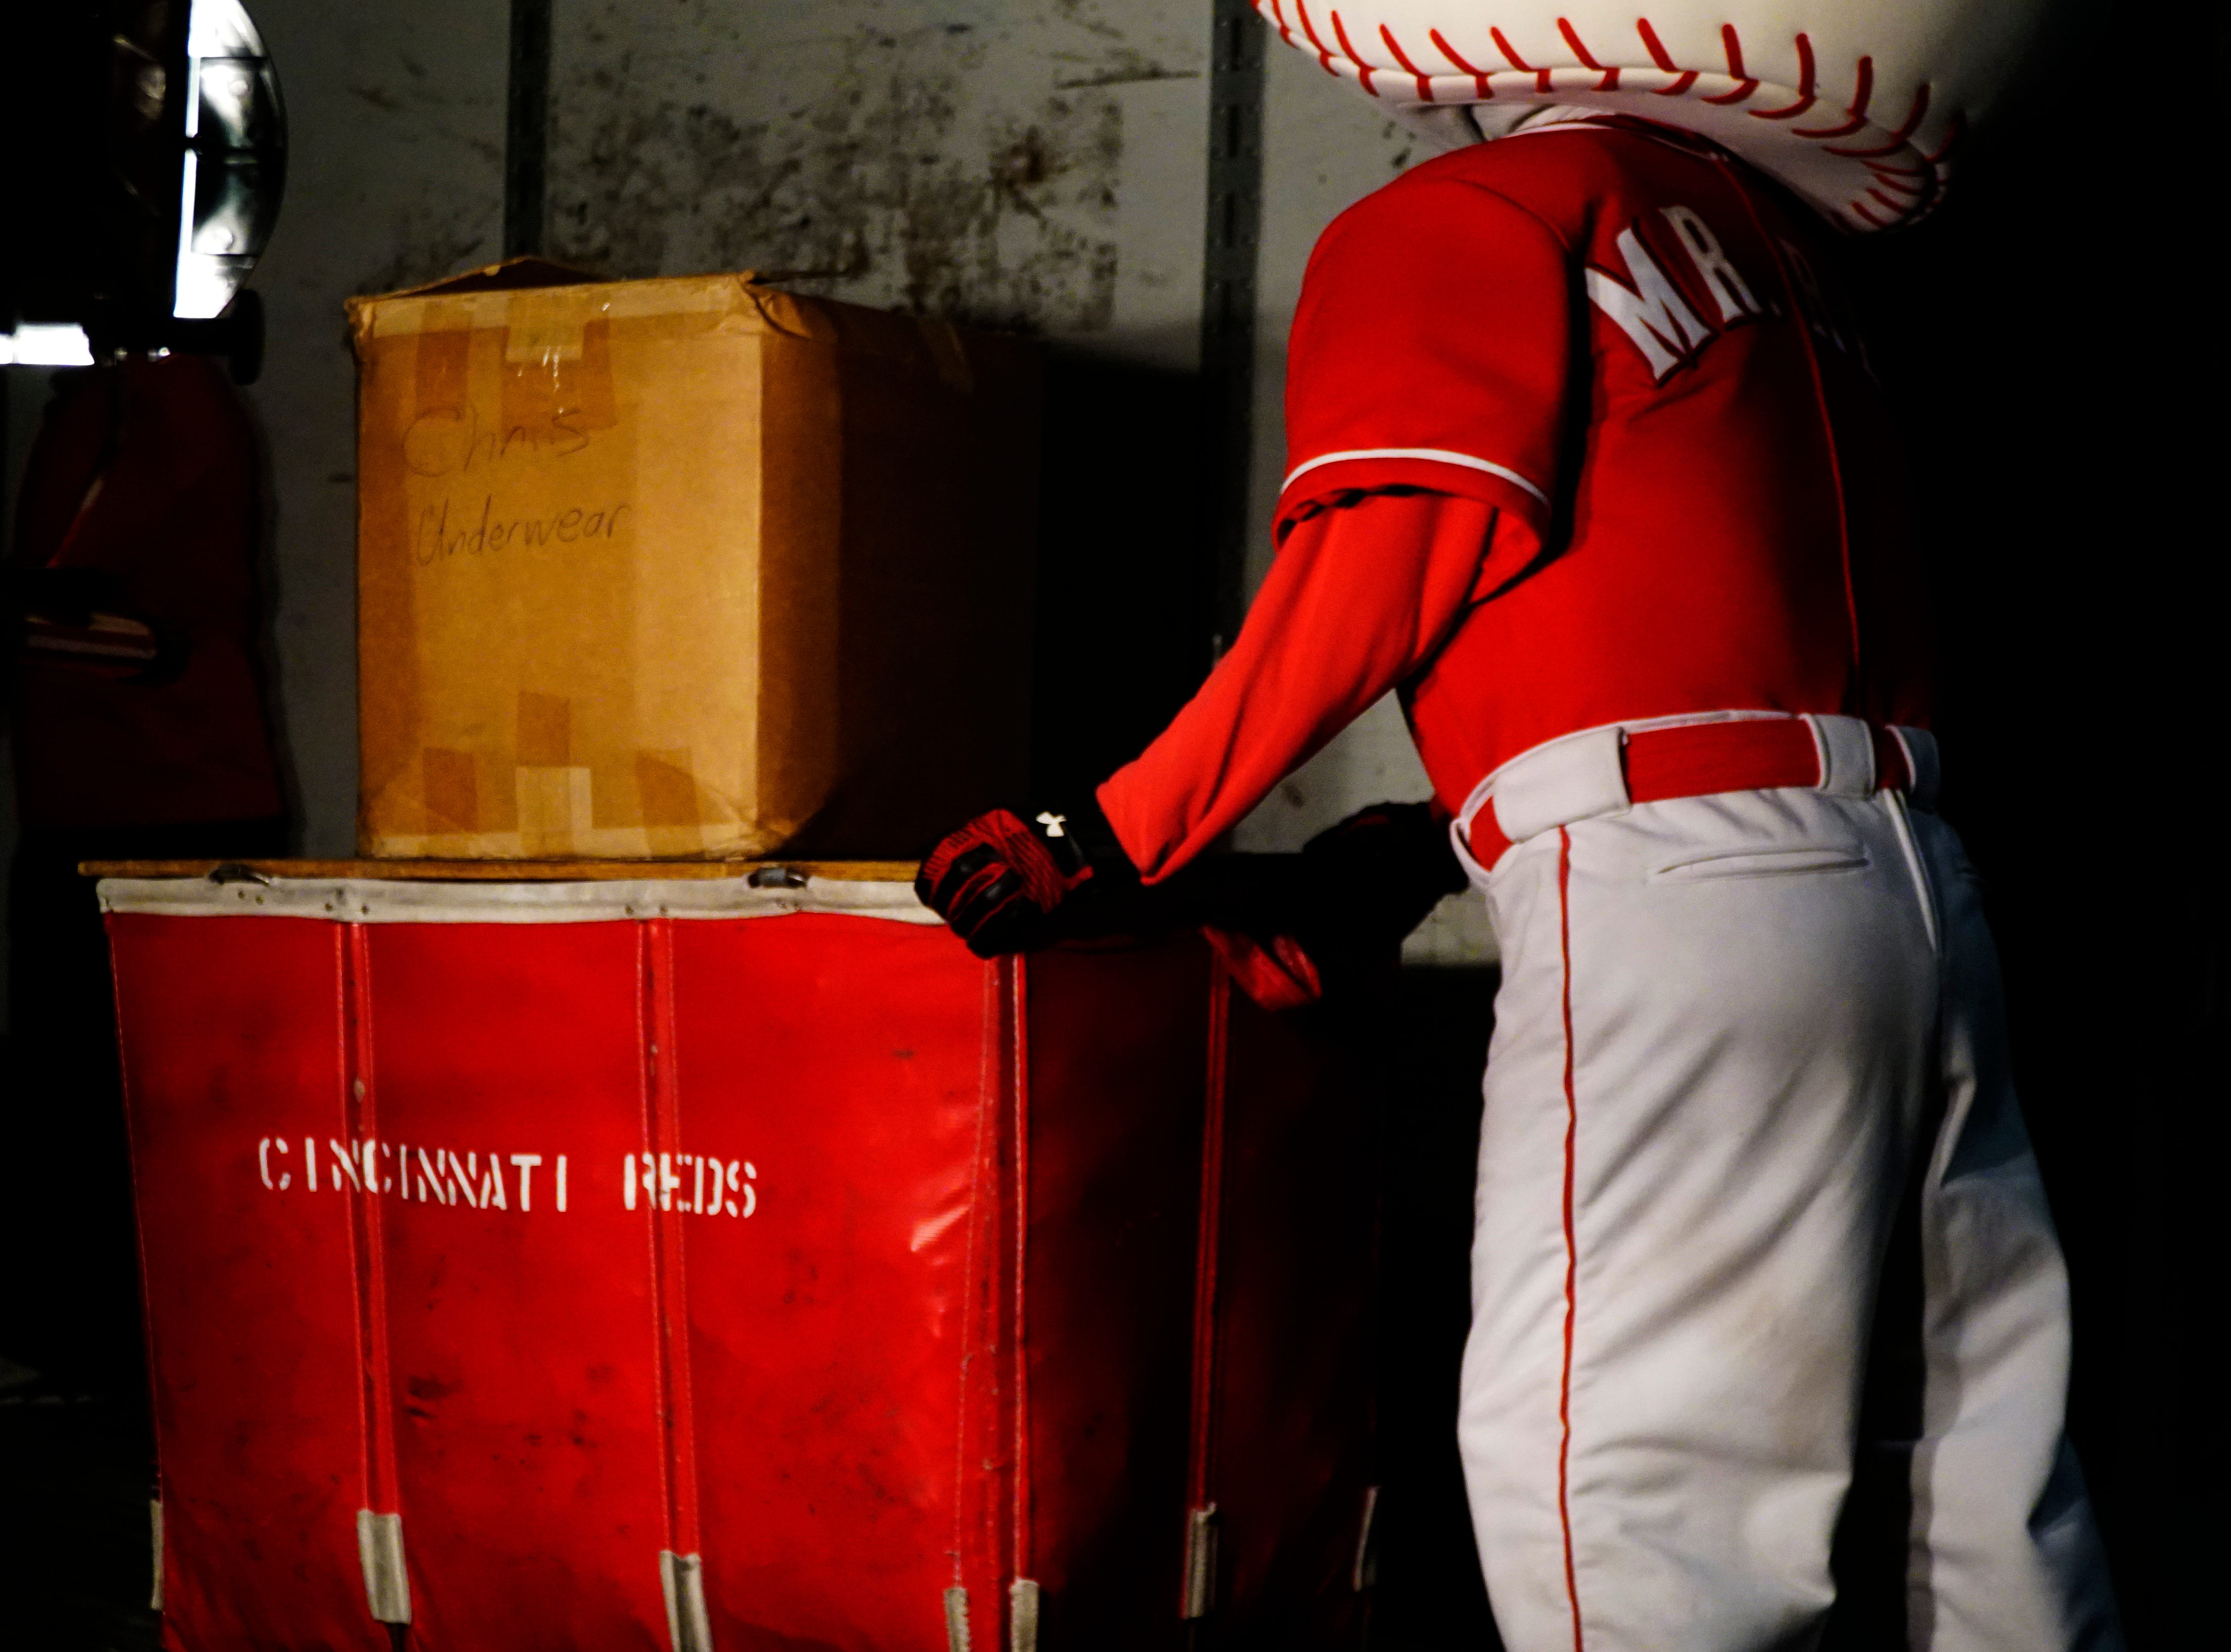 The Cincinnati Reds' mascot Mr. Red helps the team pack for Spring Training at Great American Ball Park, Tuesday, Feb. 5, 2019.